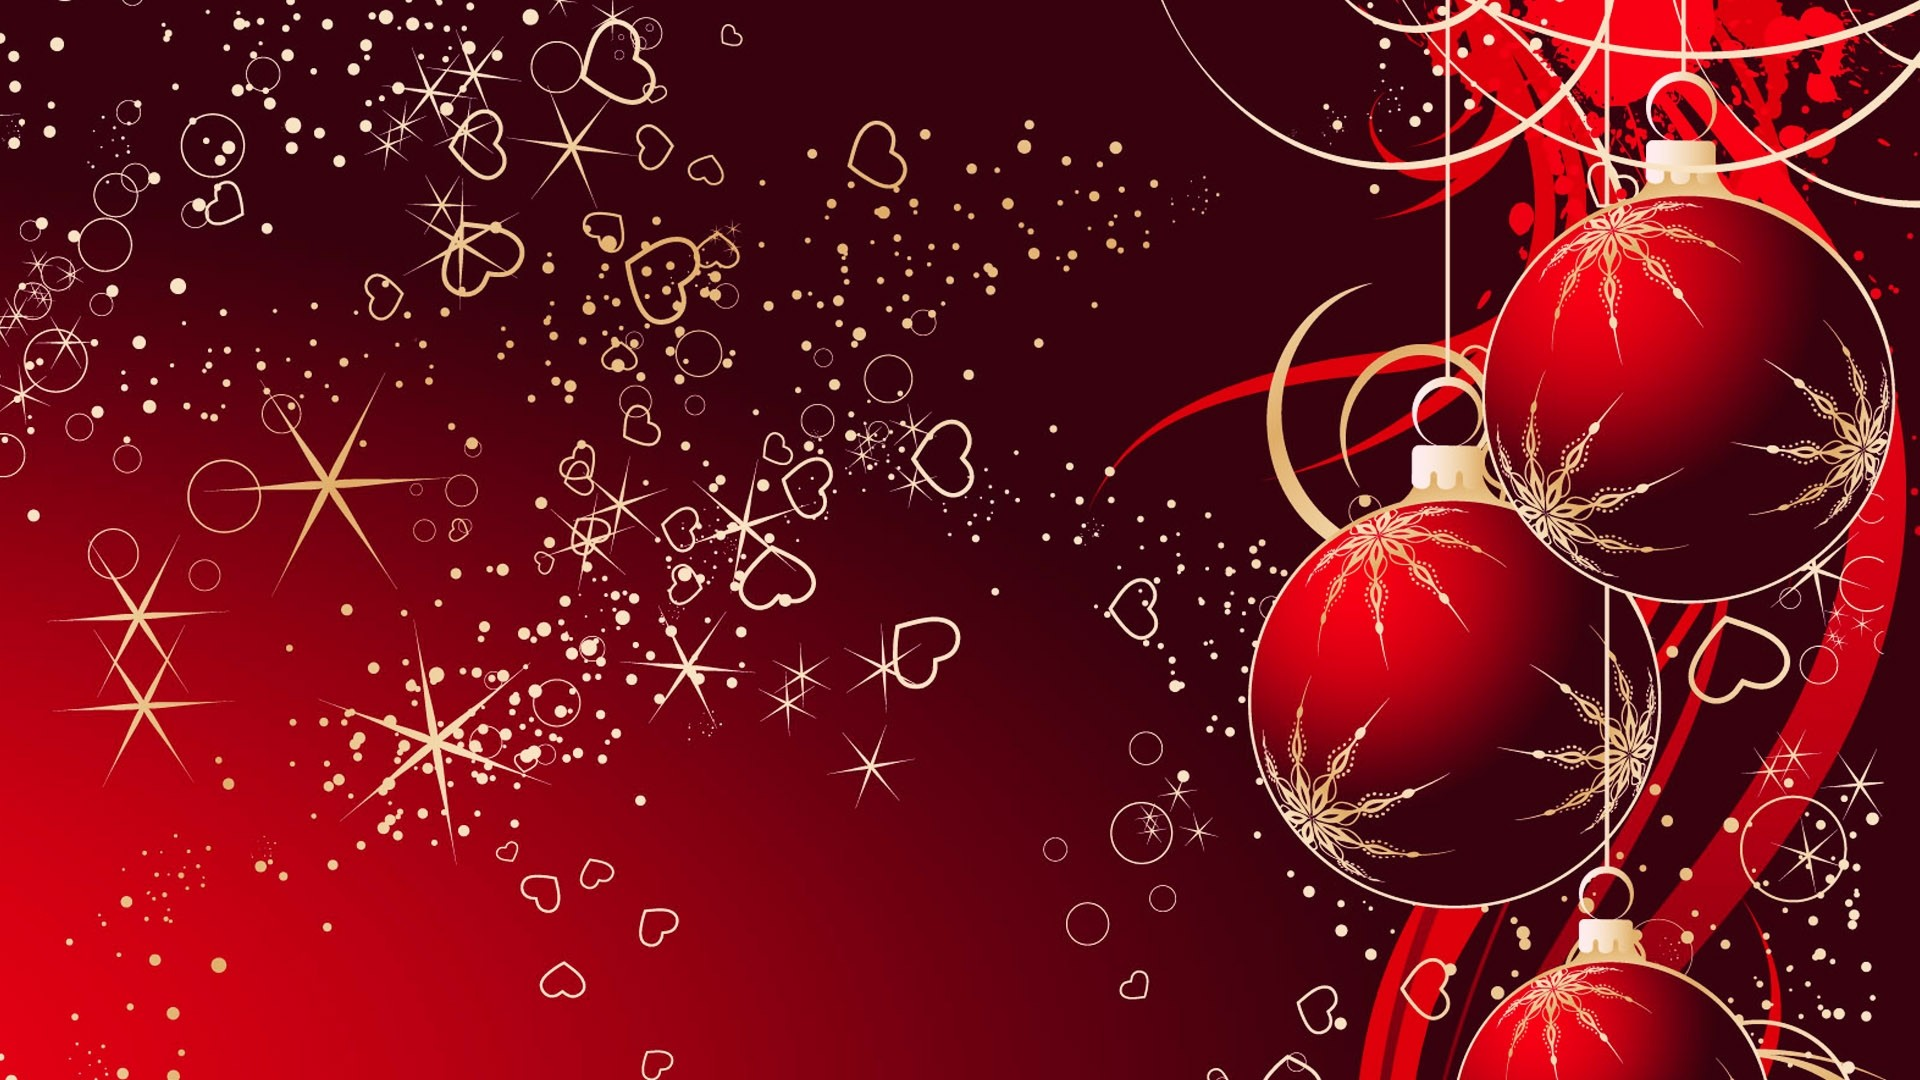 1920x1080 Christmas-Wallpaper-1080p